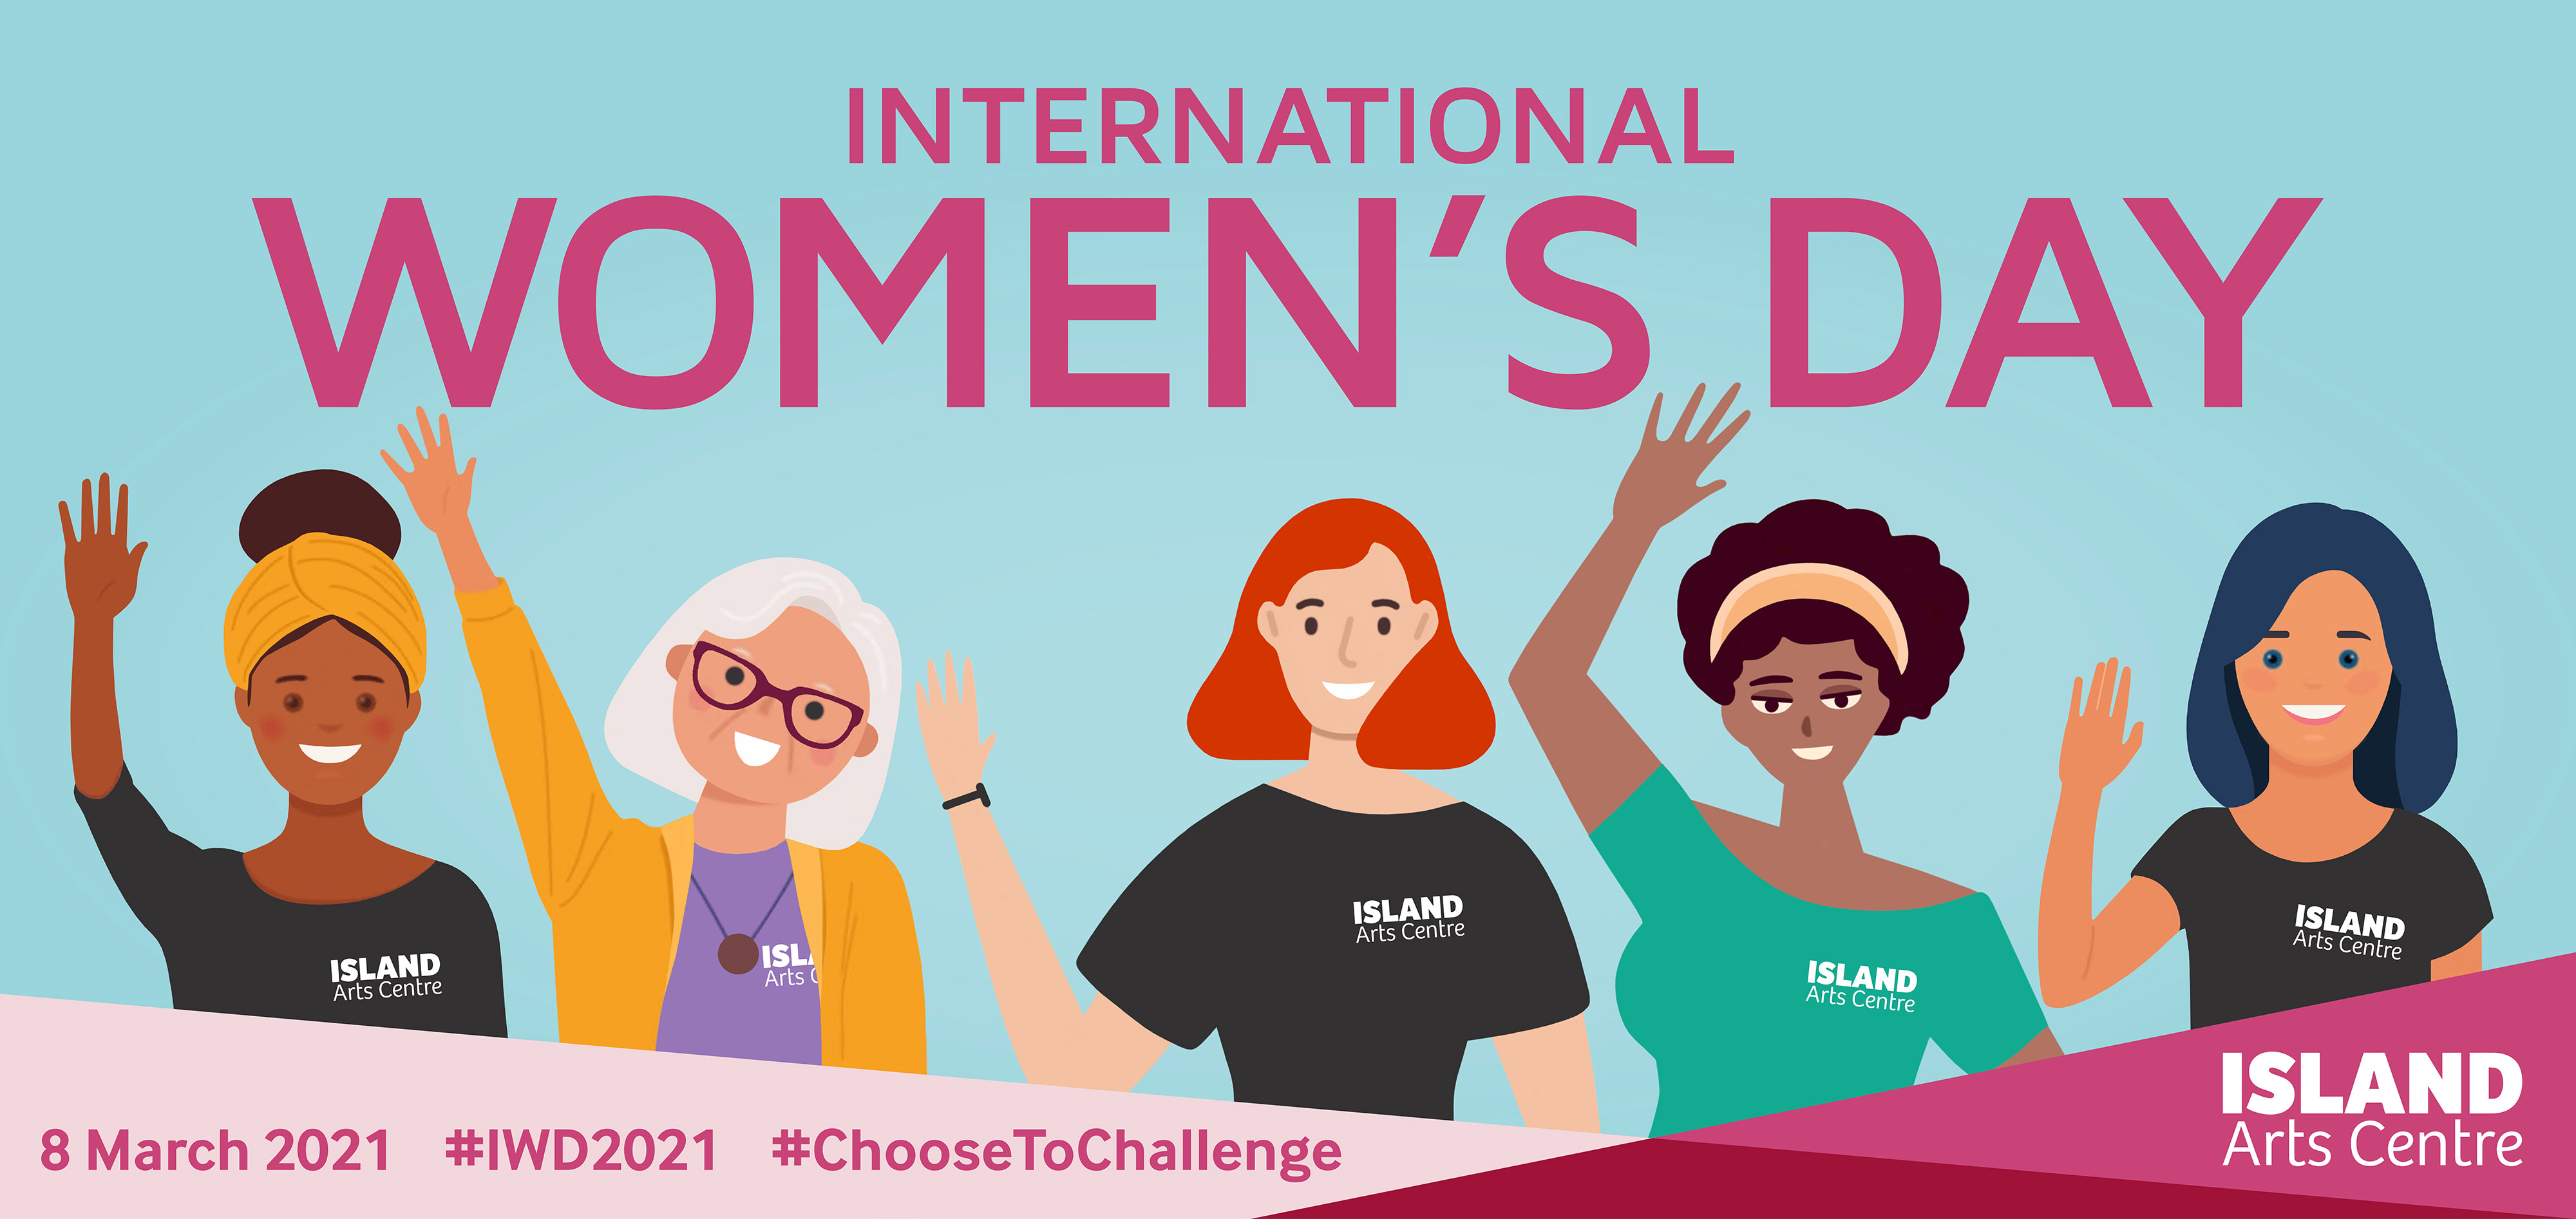 Celebrate International Women's Day on Mon 8 Mar by joining ISLAND Arts' FREE creative challenge.